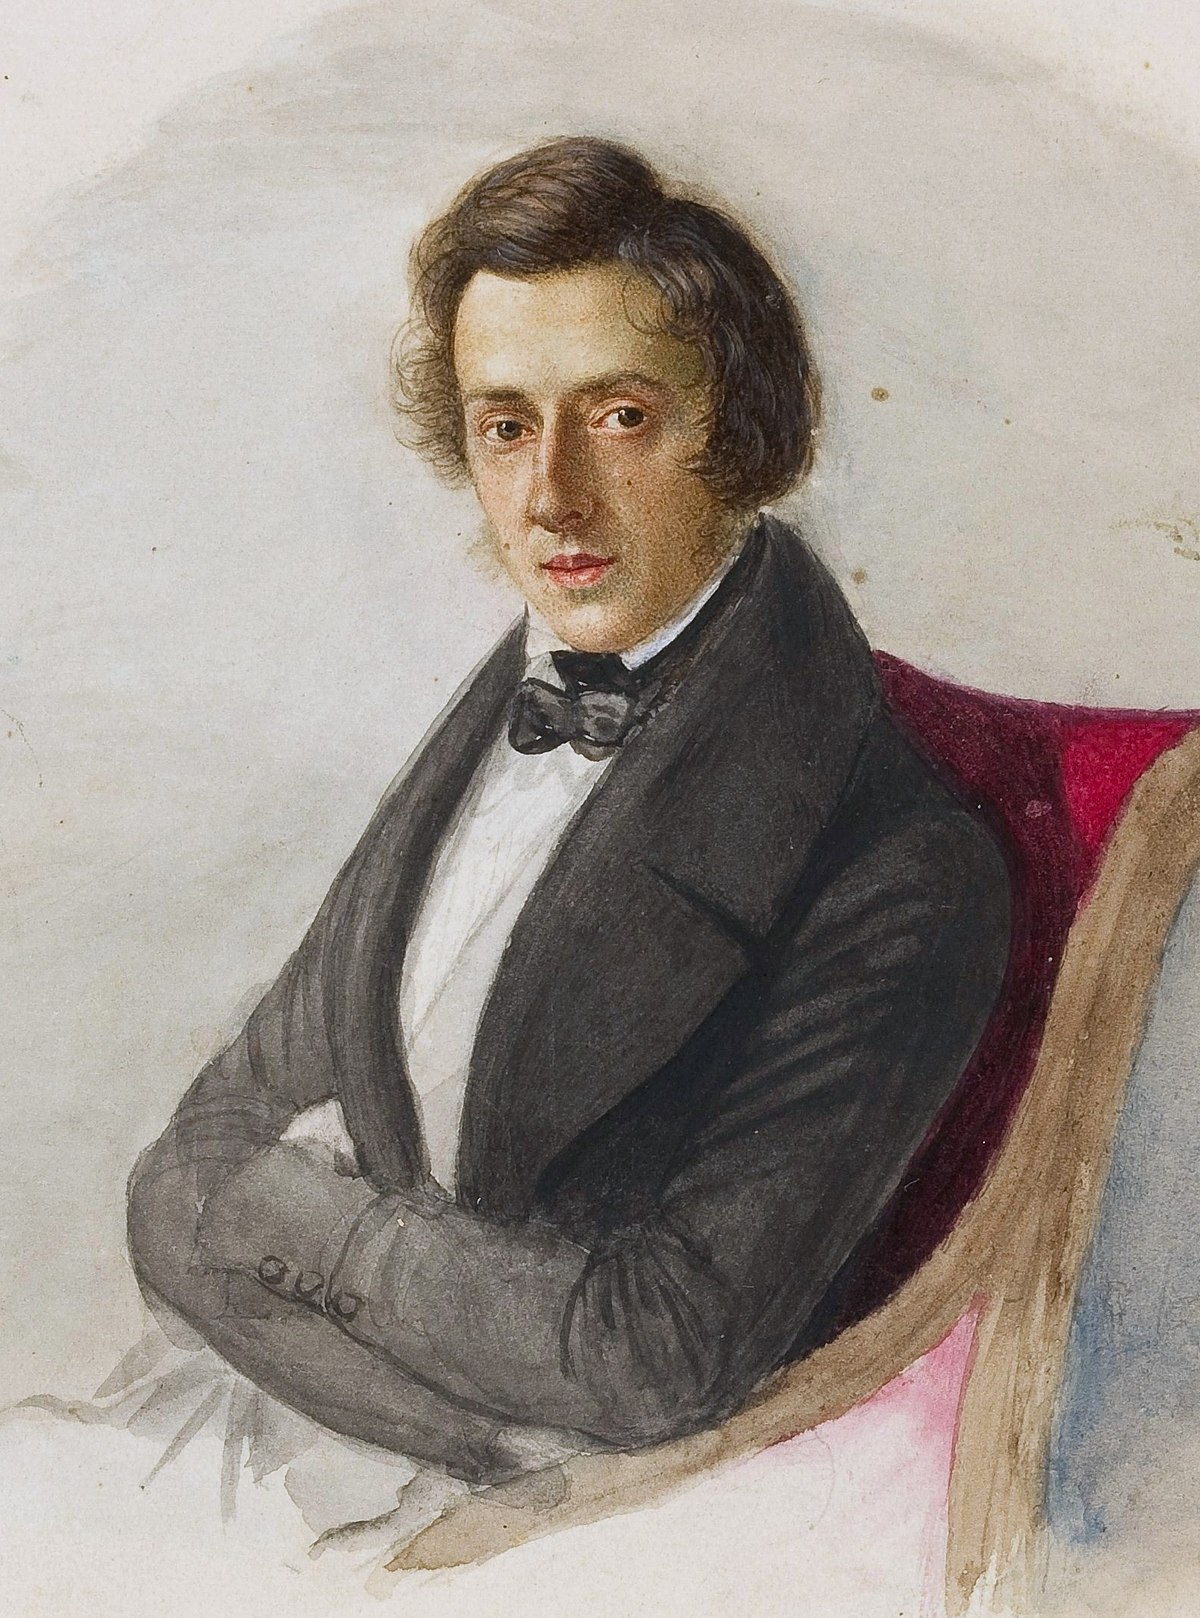 List of compositions by Frédéric Chopin by genre - Wikipedia